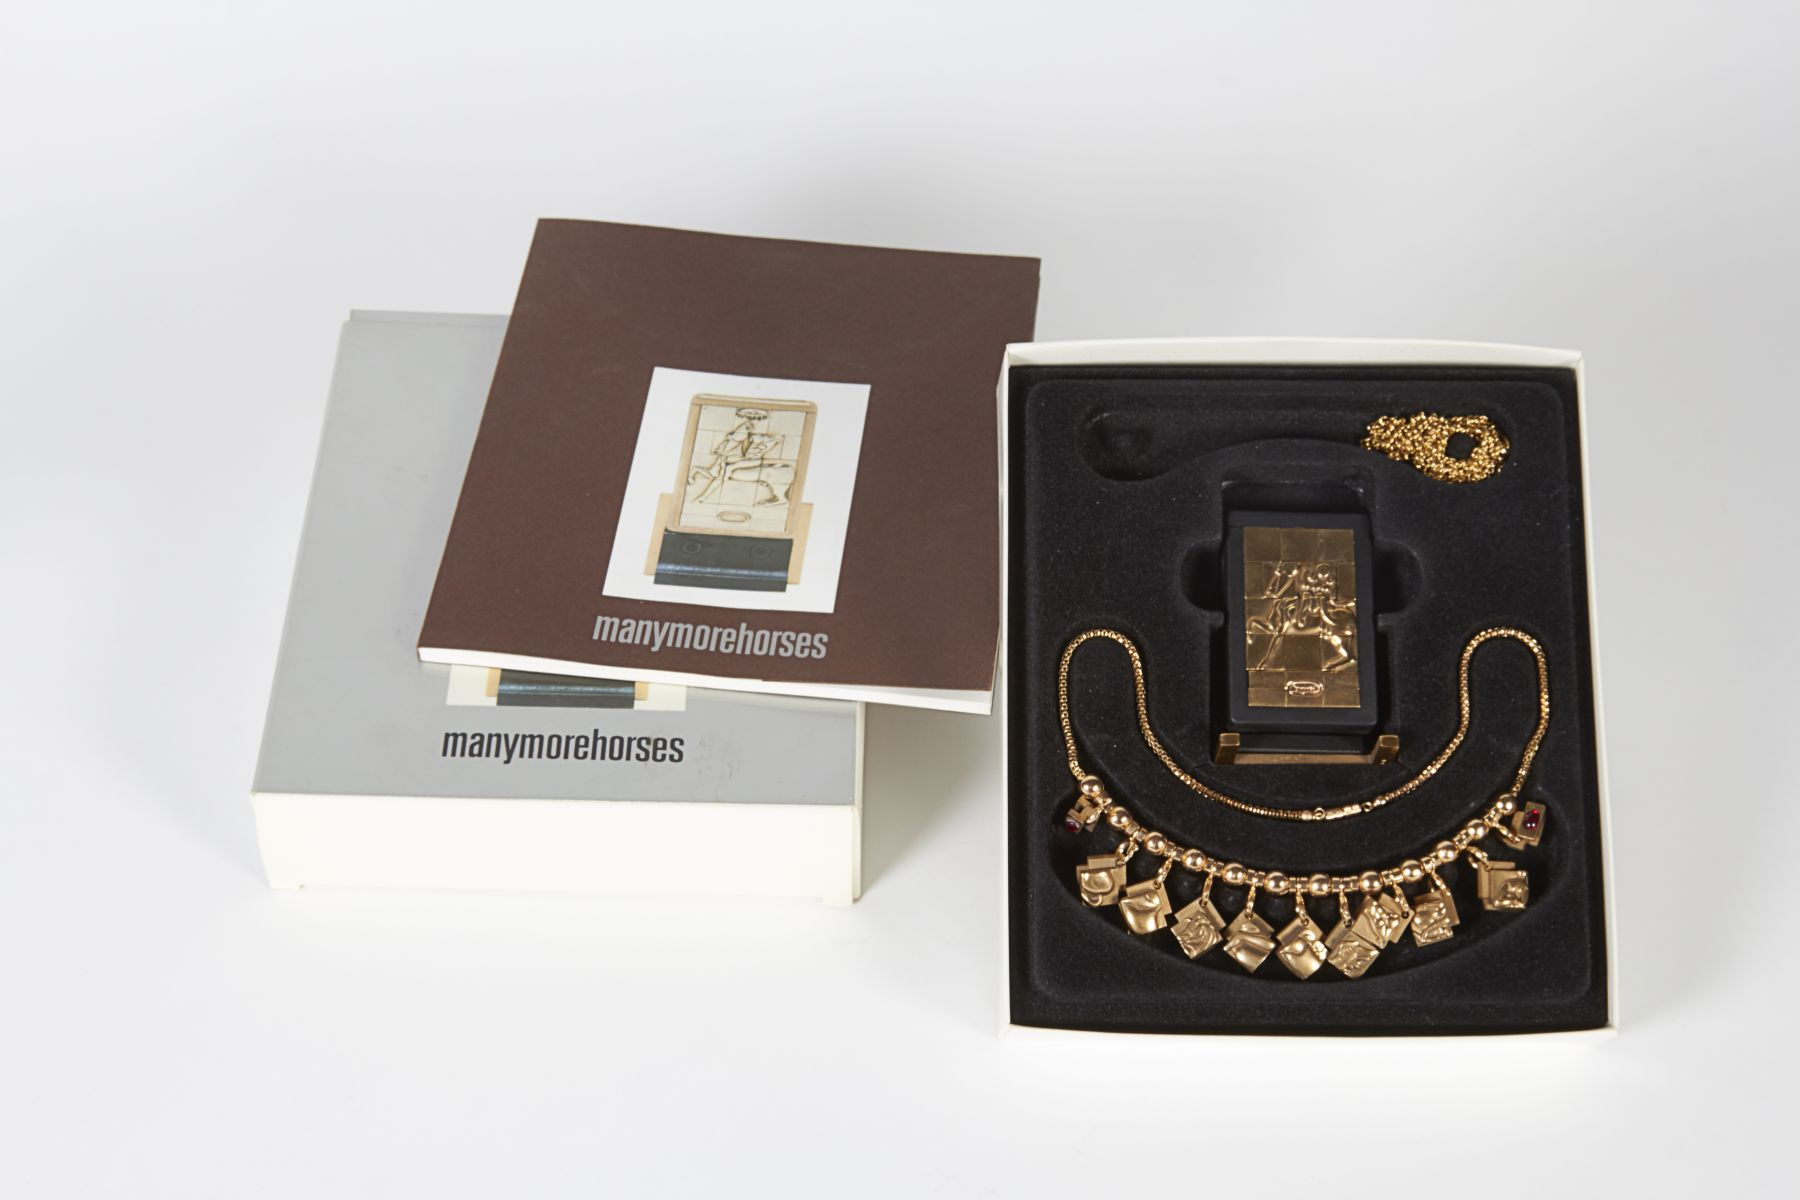 Many More Horses Necklace and Puzzle Sculpture by Berrocal